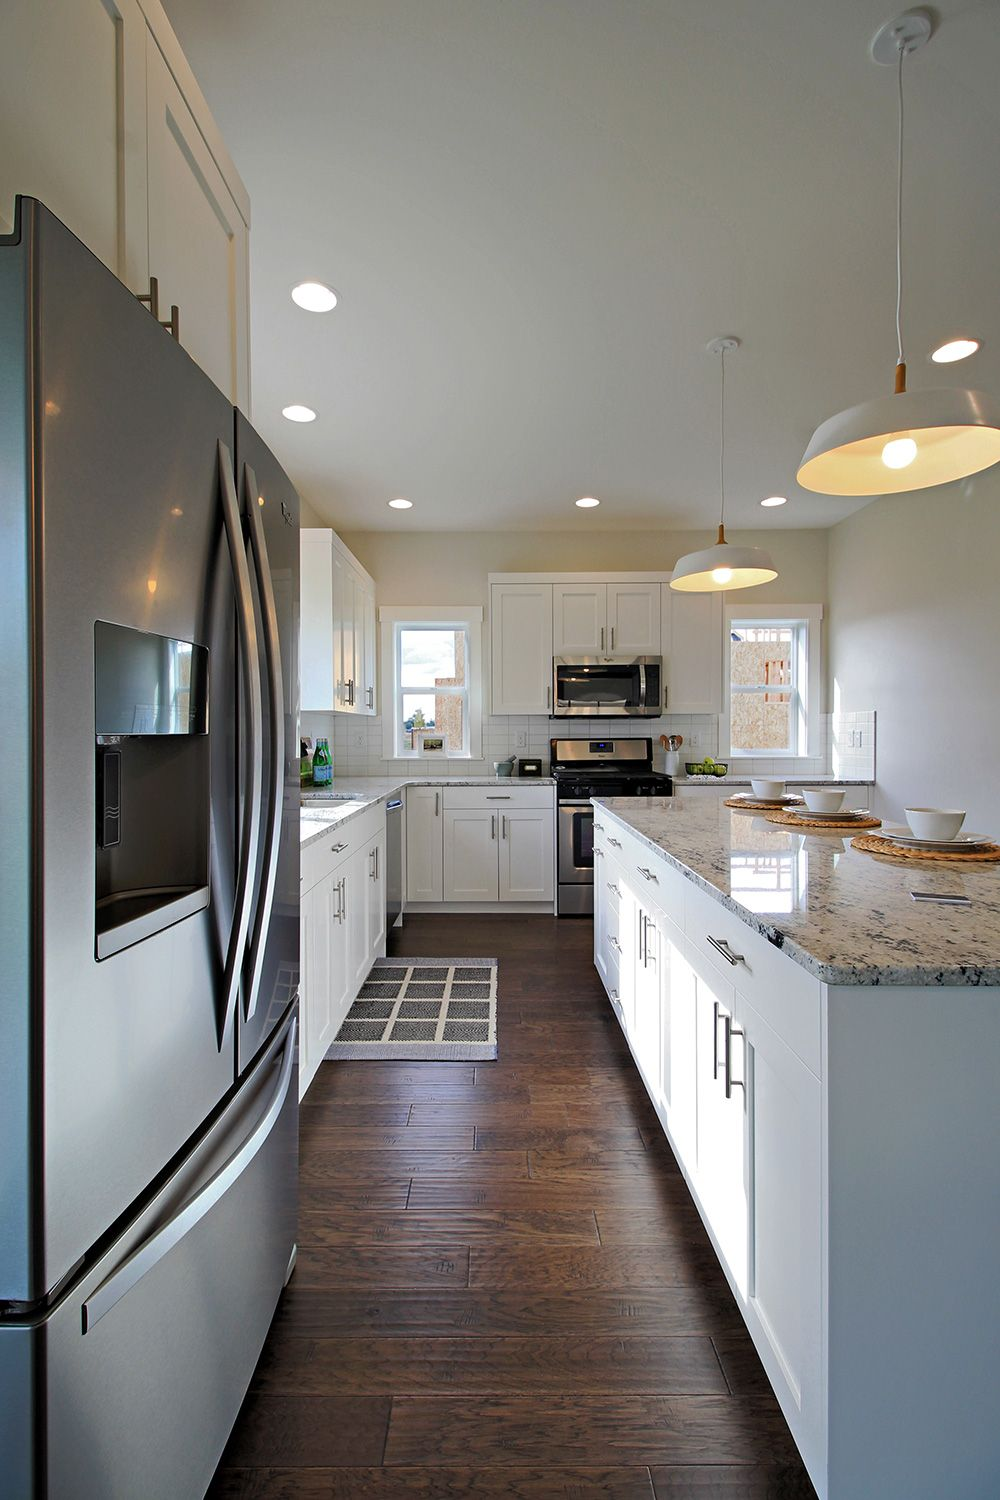 L Shaped Kitchen With White Shaker Cabinets Colonial White Granite Countertops Dark Engin White Granite Countertops White Kitchen Paint White Shaker Cabinets